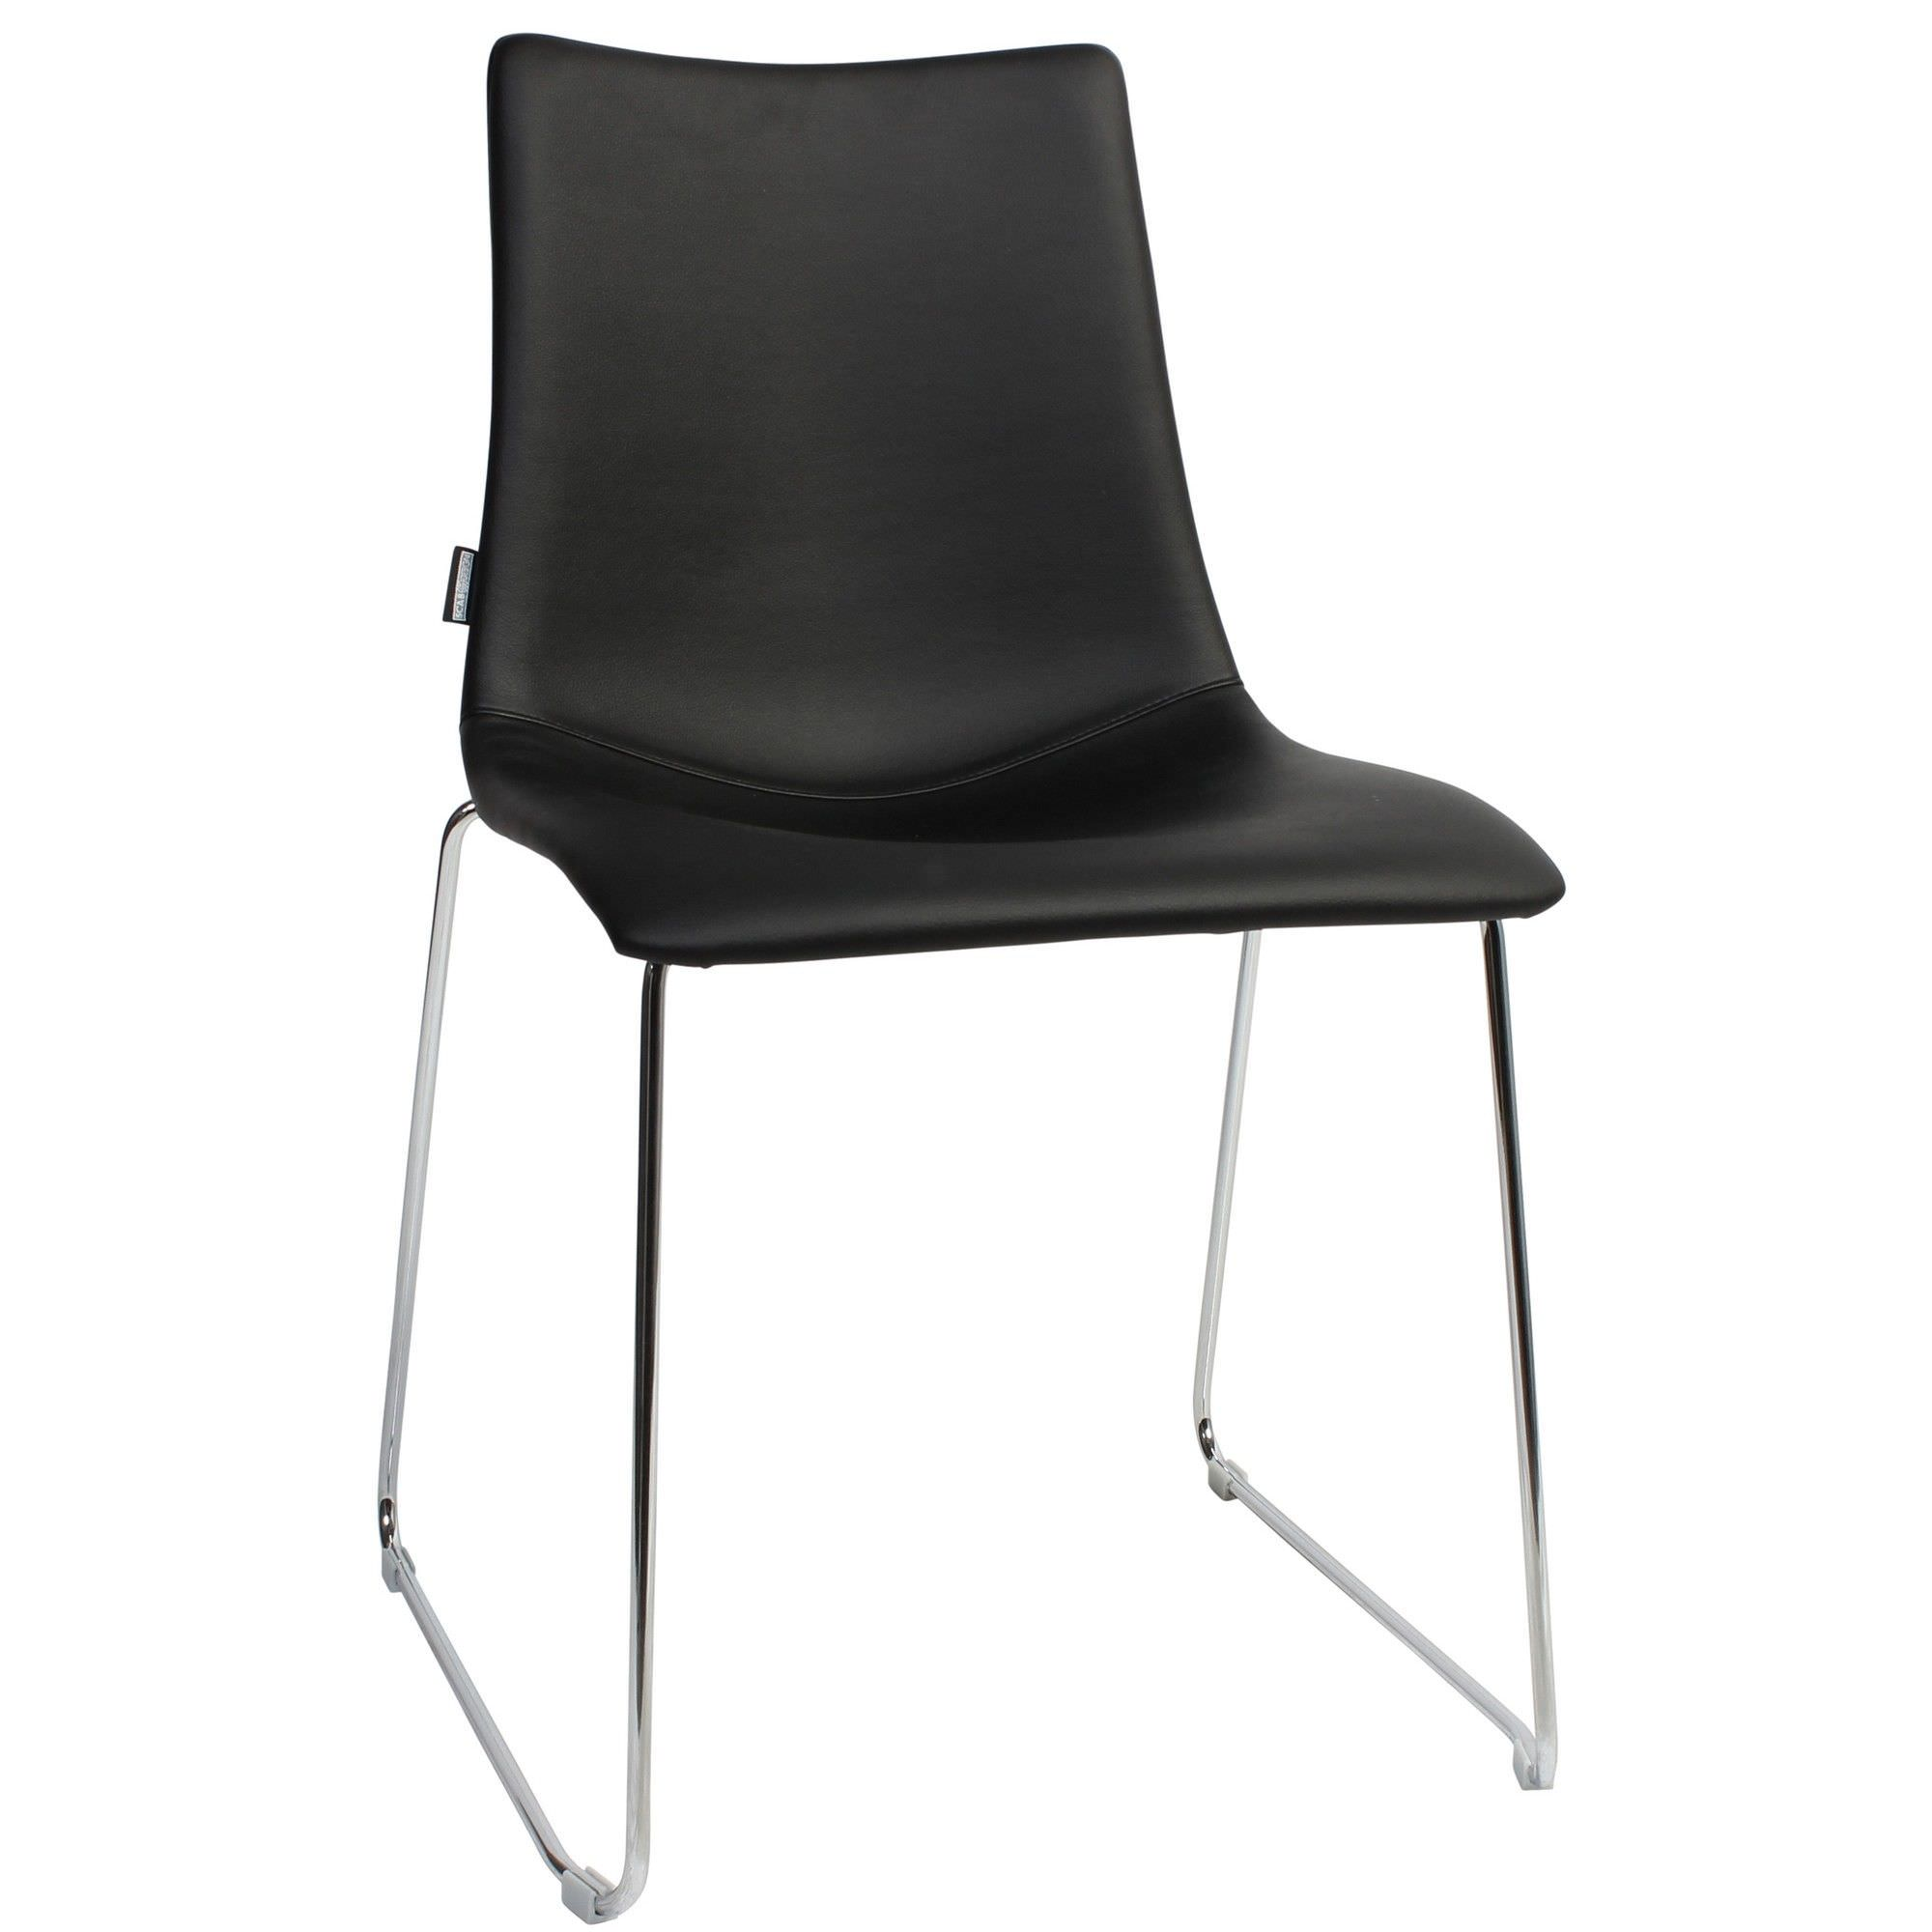 Zebra Pop Italian Made Commercial Grade Vinyl Dining Chair, Sled Leg, Black / Chrome